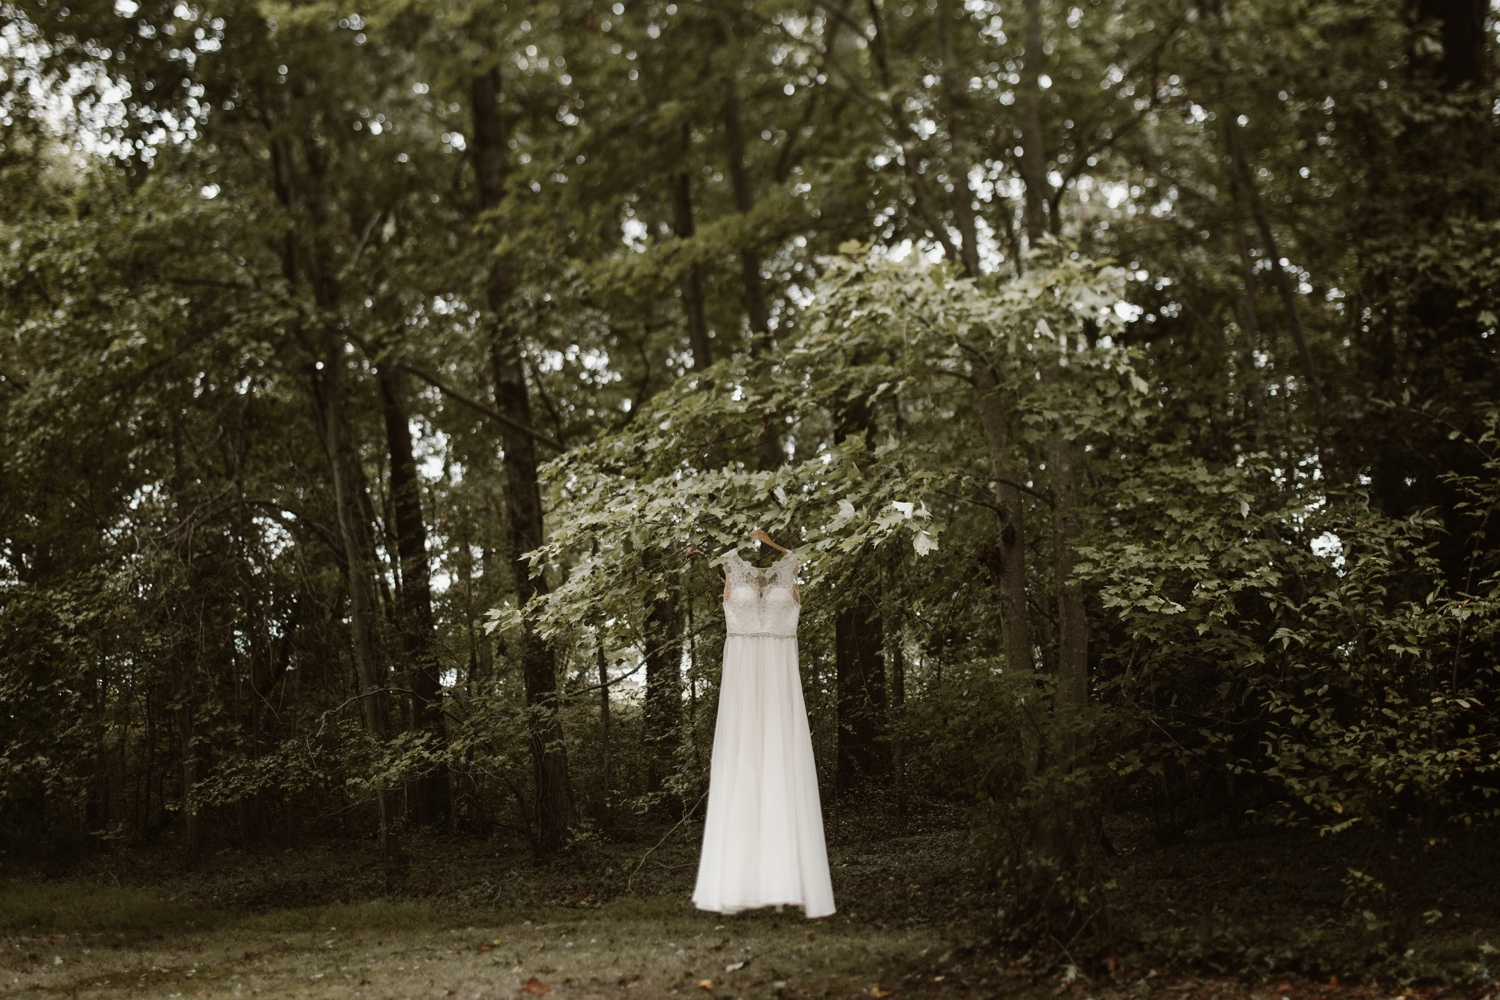 Baltimore wedding photographer outdoor Maryland wedding ceremony   forest earthy Annapolis wedding   bride getting ready portraits   wedding details photography